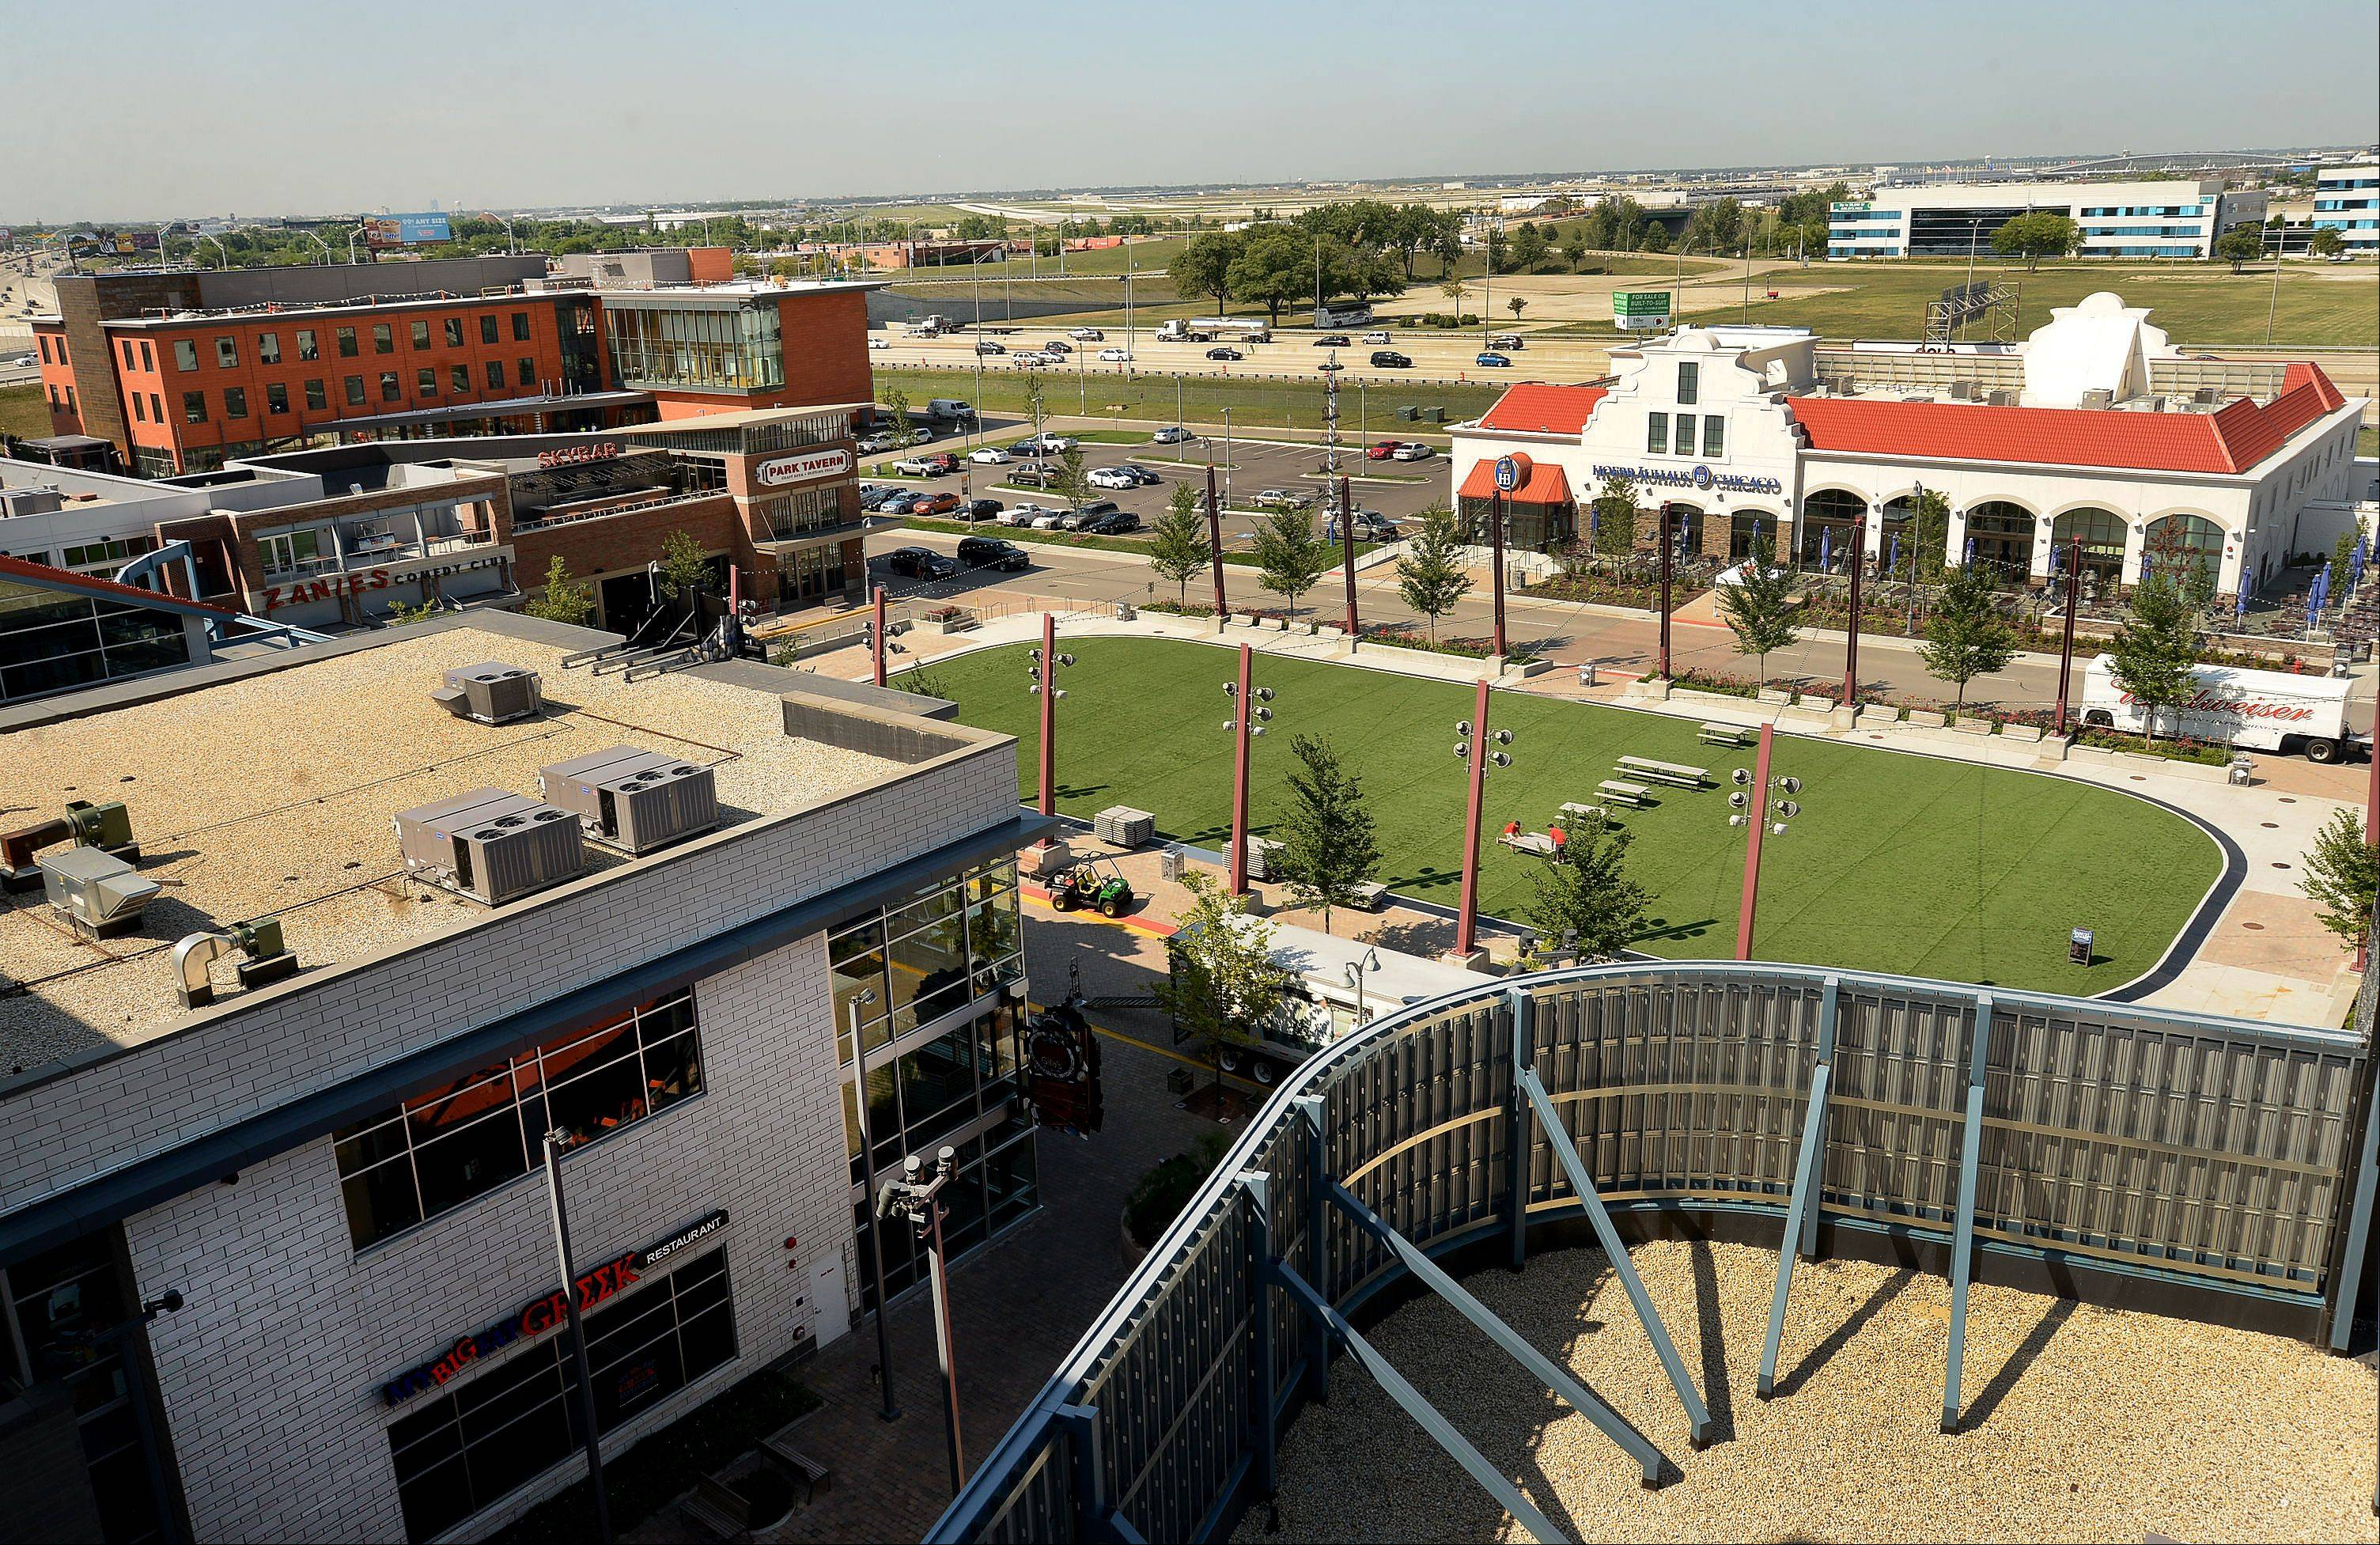 The entertainment district, as seen from the top of the parking lot, wouldn't have come together if Rosemont hadn't lost its bid for a casino.